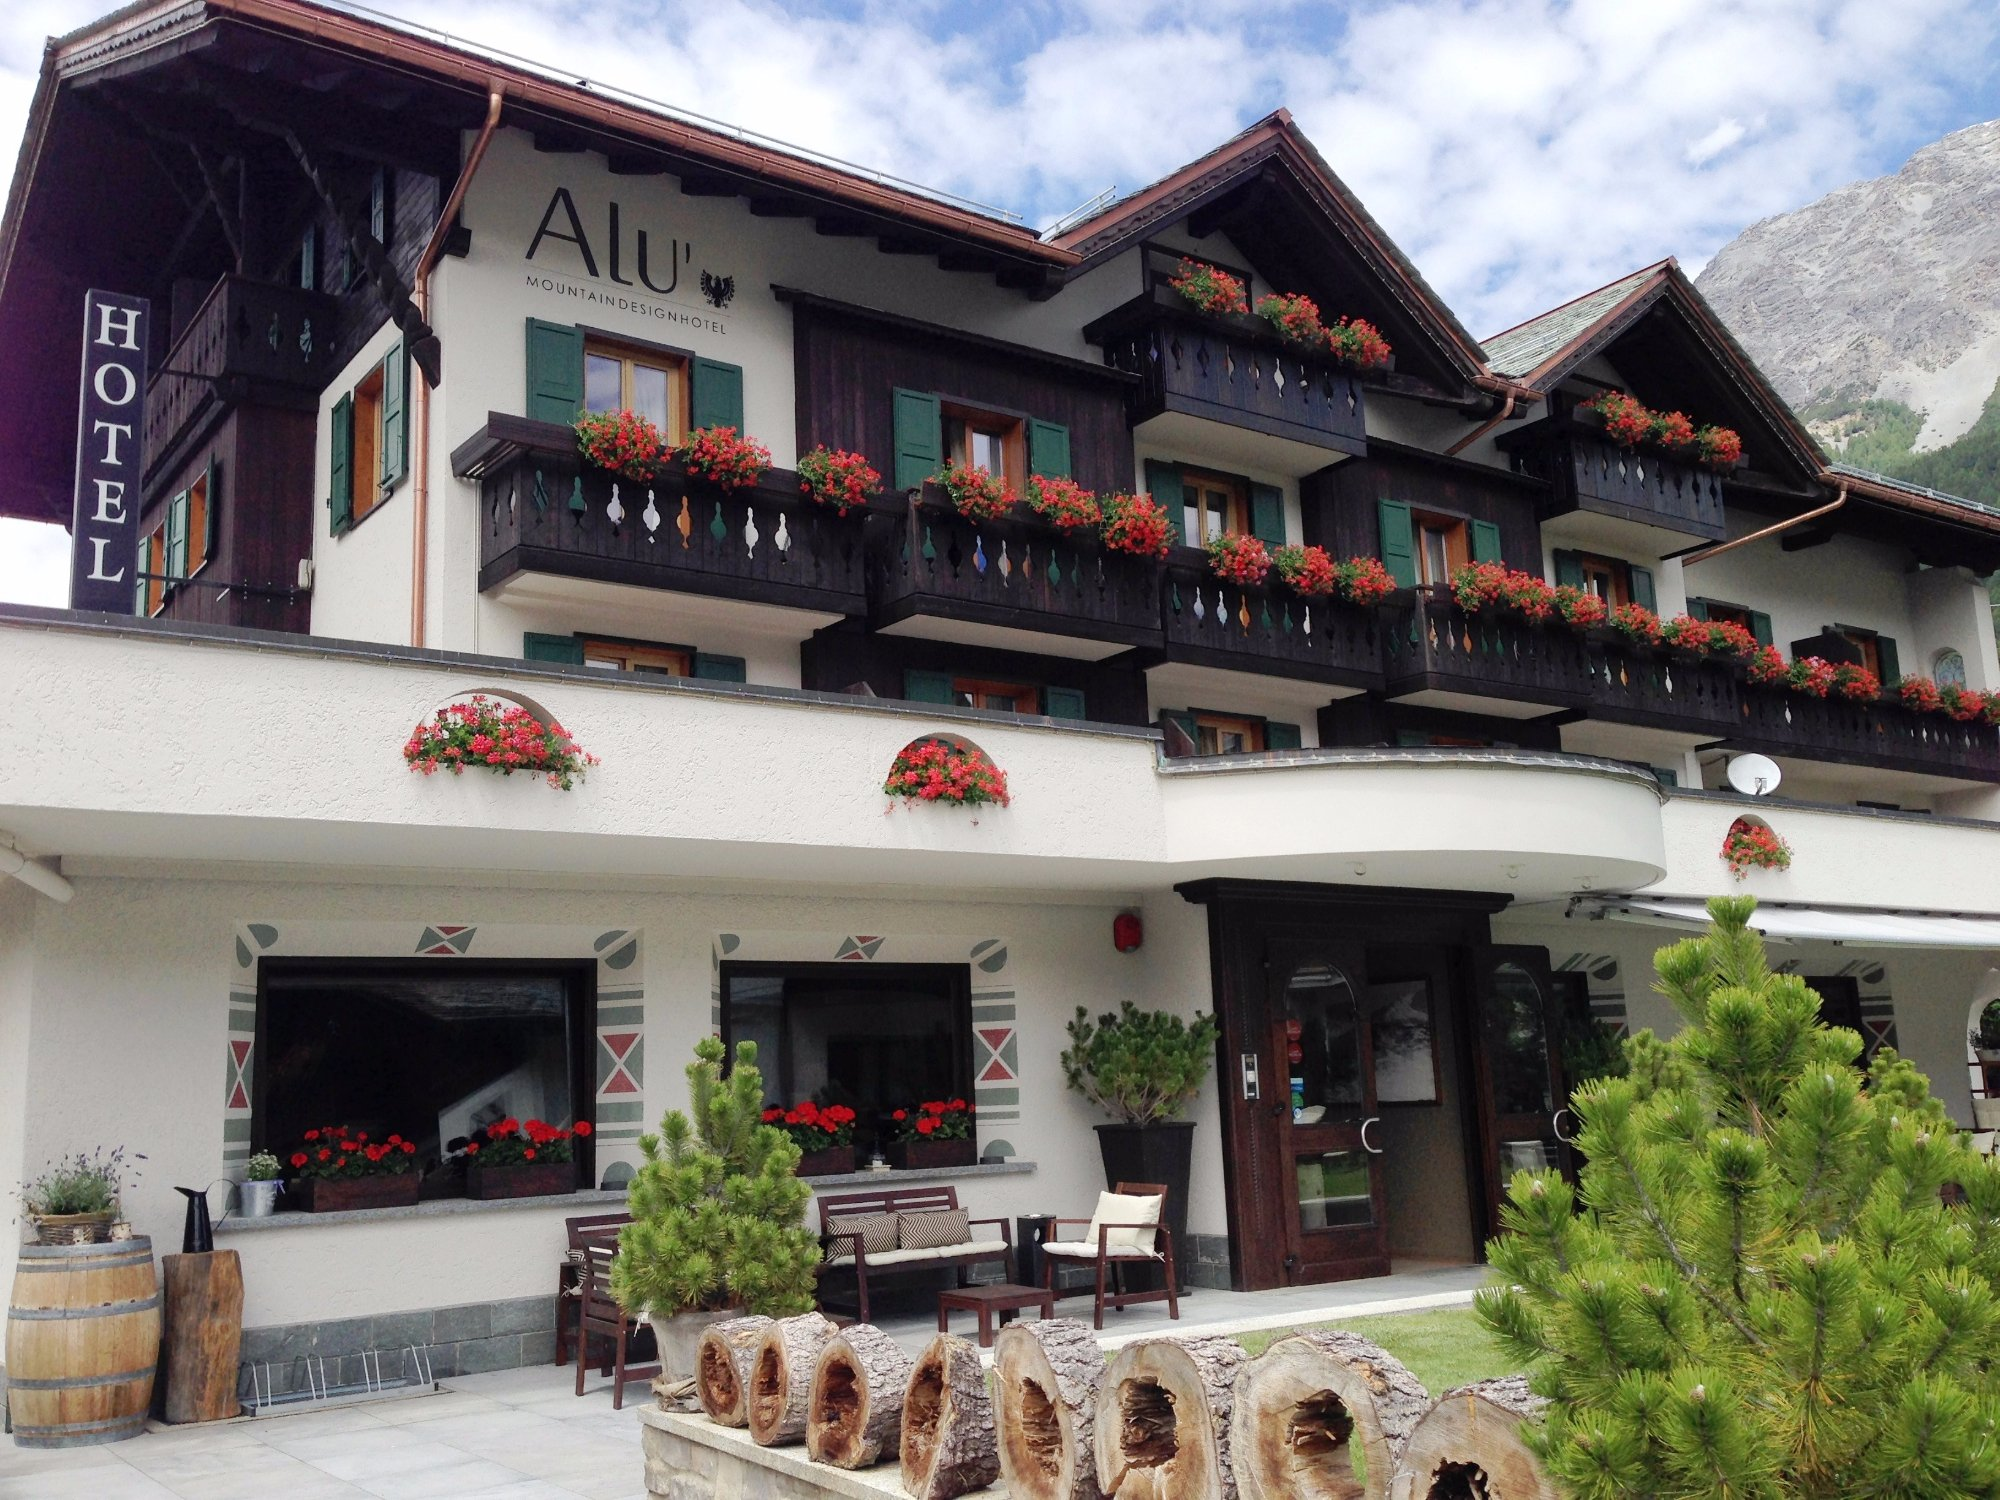 Hotel alu updated 2017 reviews price comparison for Hotel meuble bormio